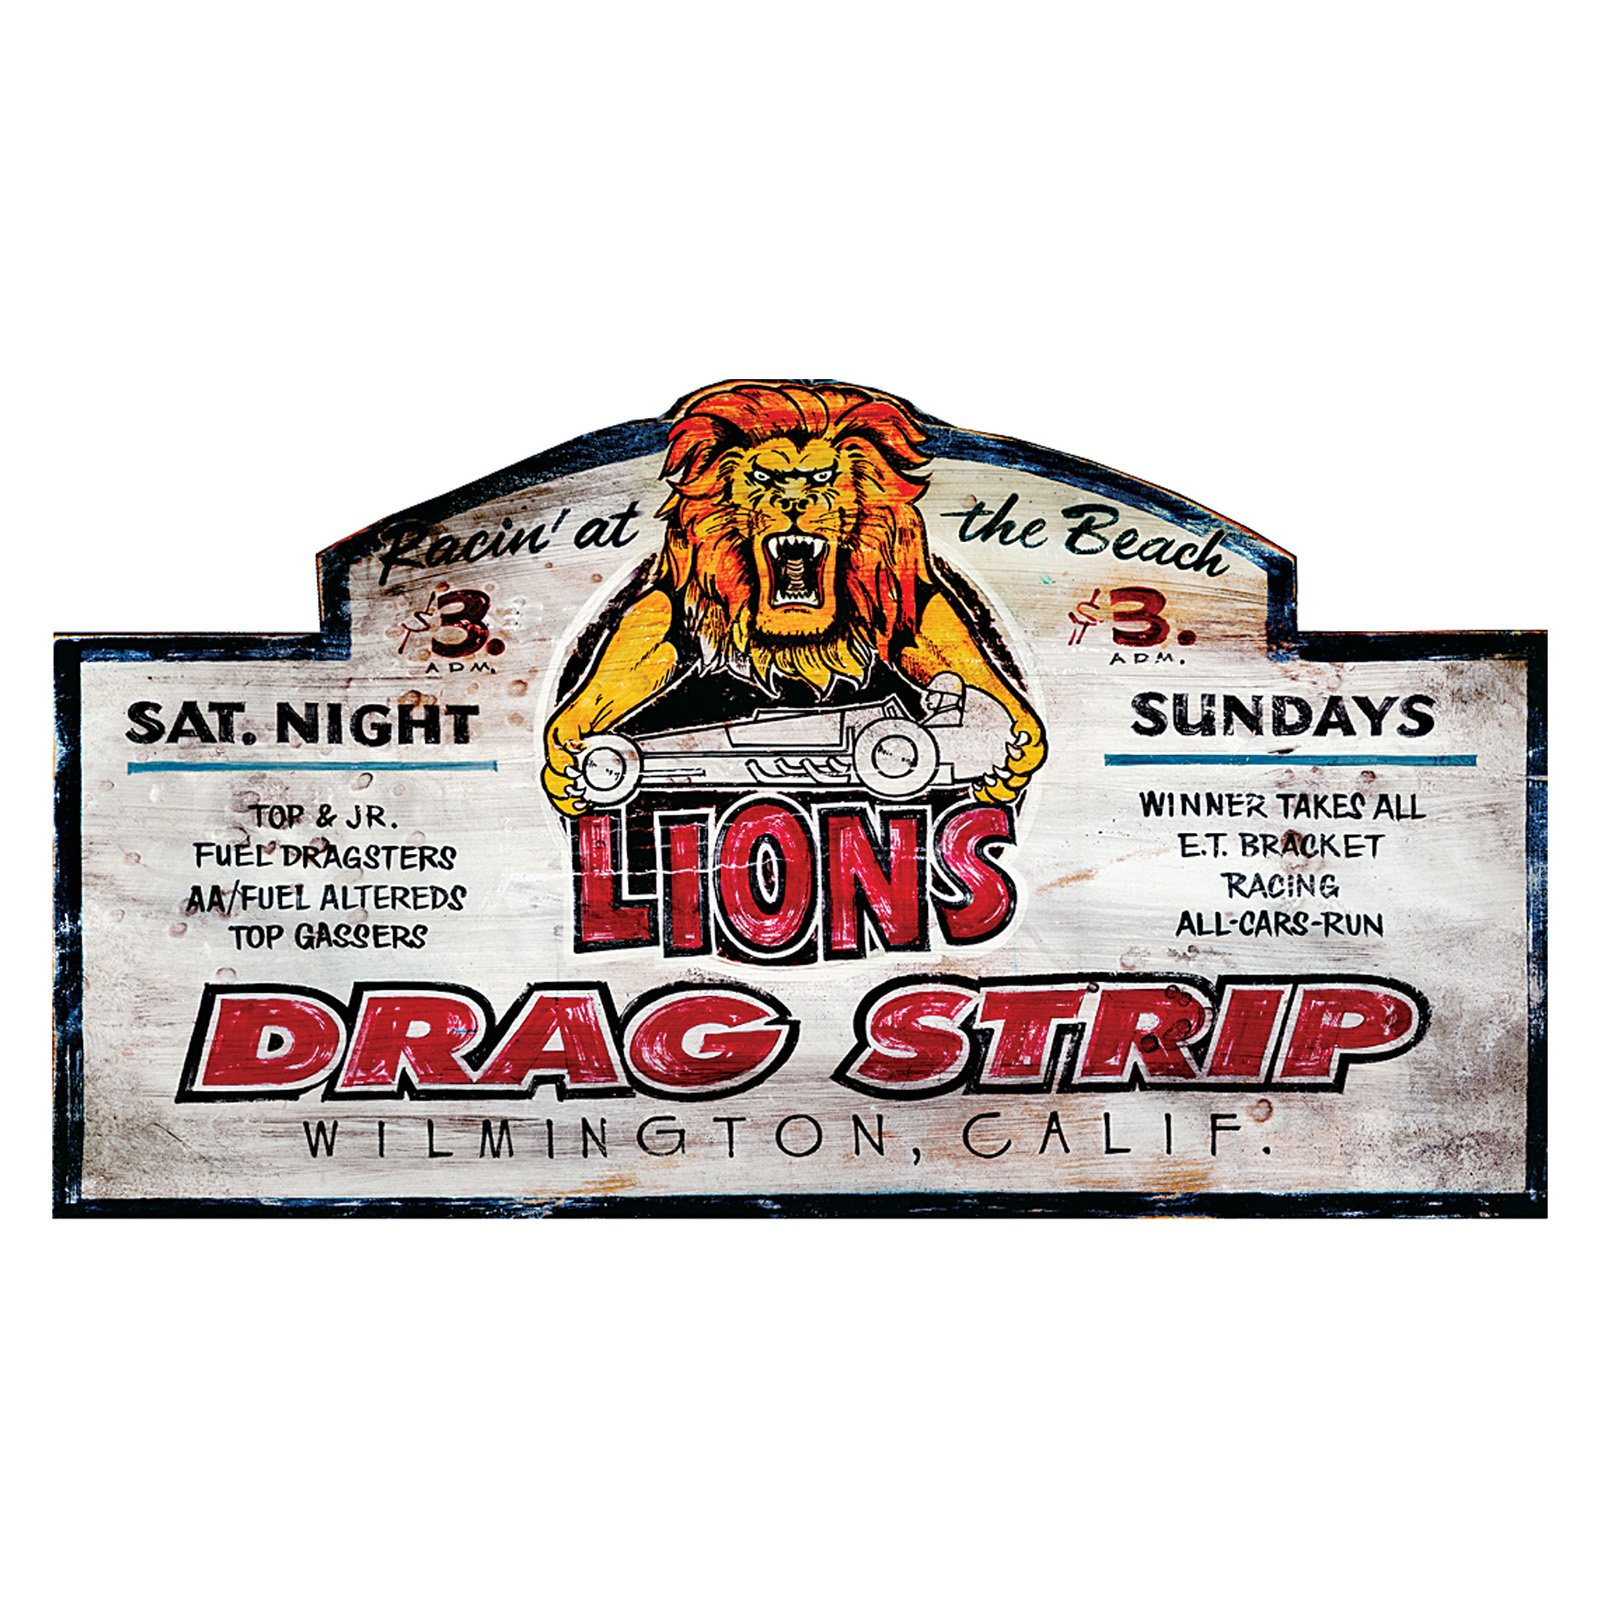 Drag Strip Wall Art - 32W x 18H in.